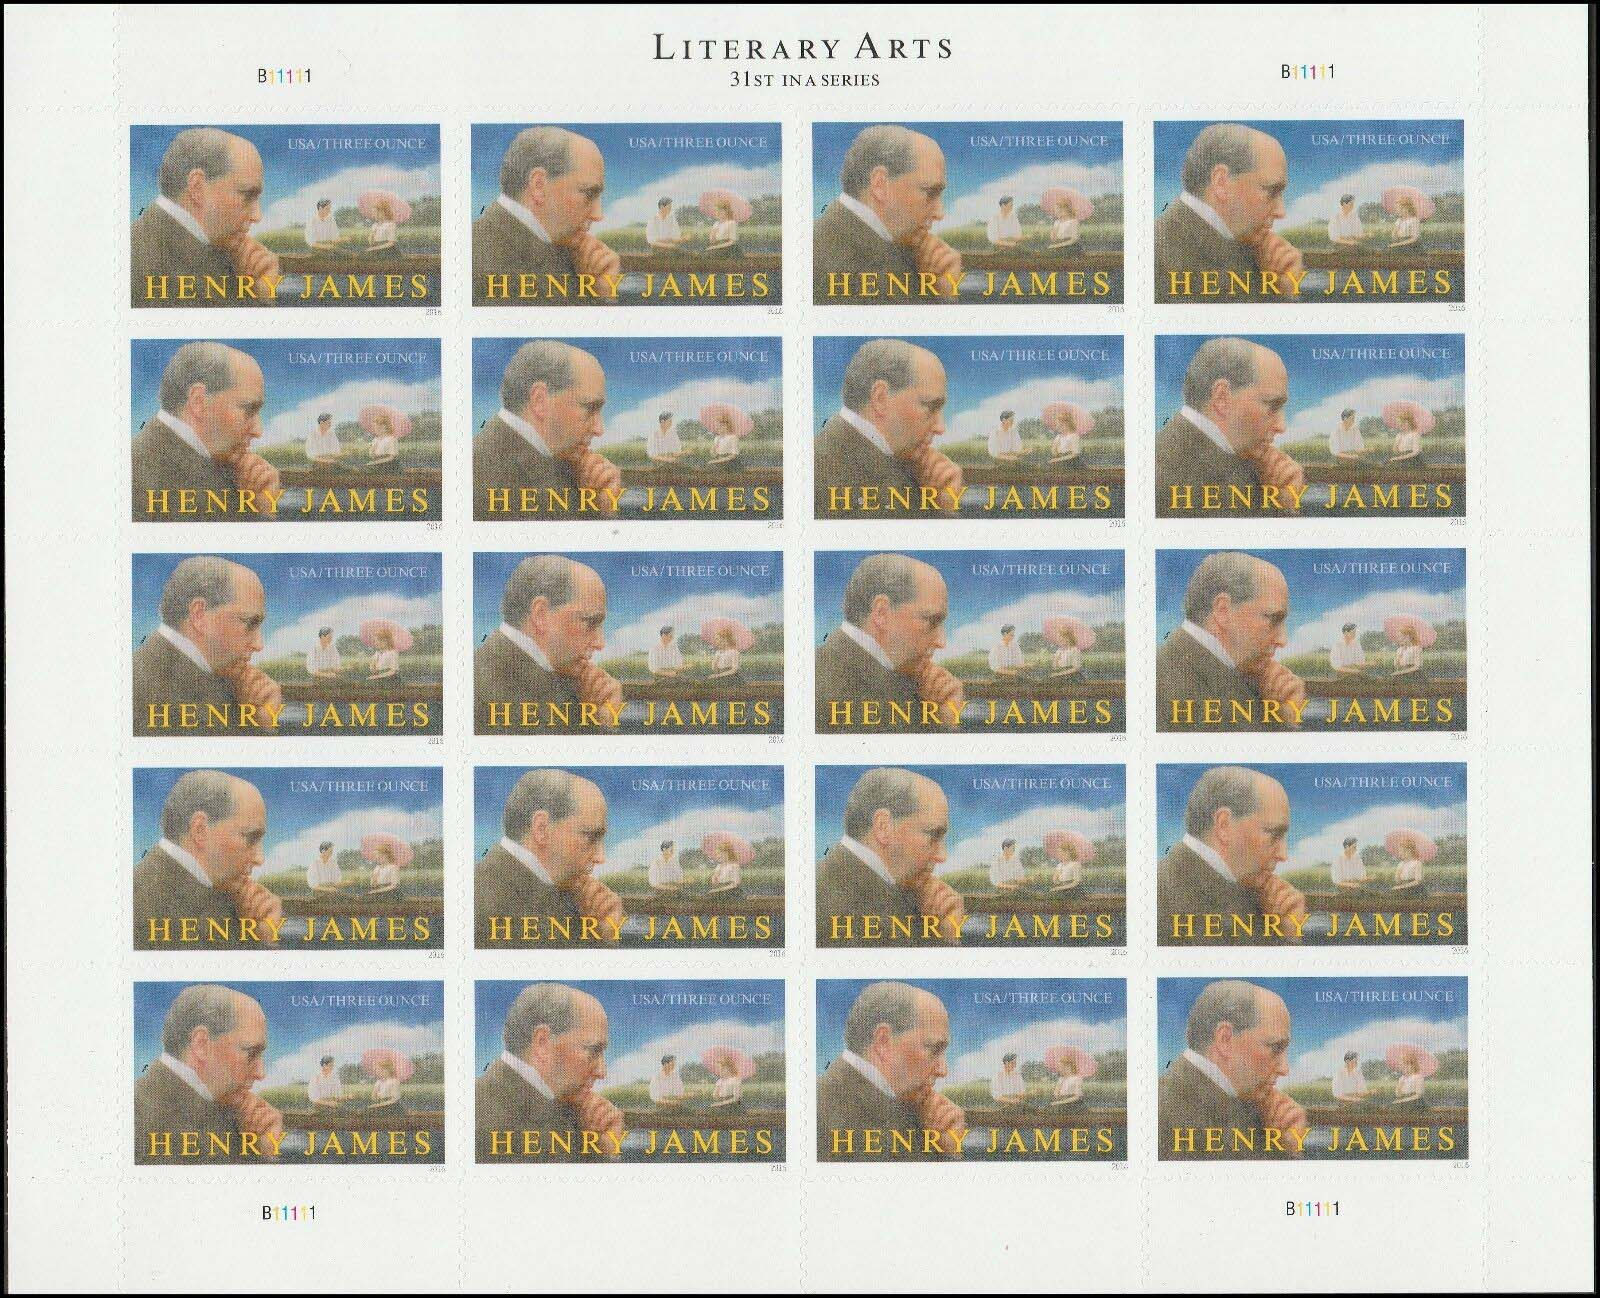 Scott #5105, (3 oz Rate=85 cents) sheet of 20, Literary Arts, Henry James